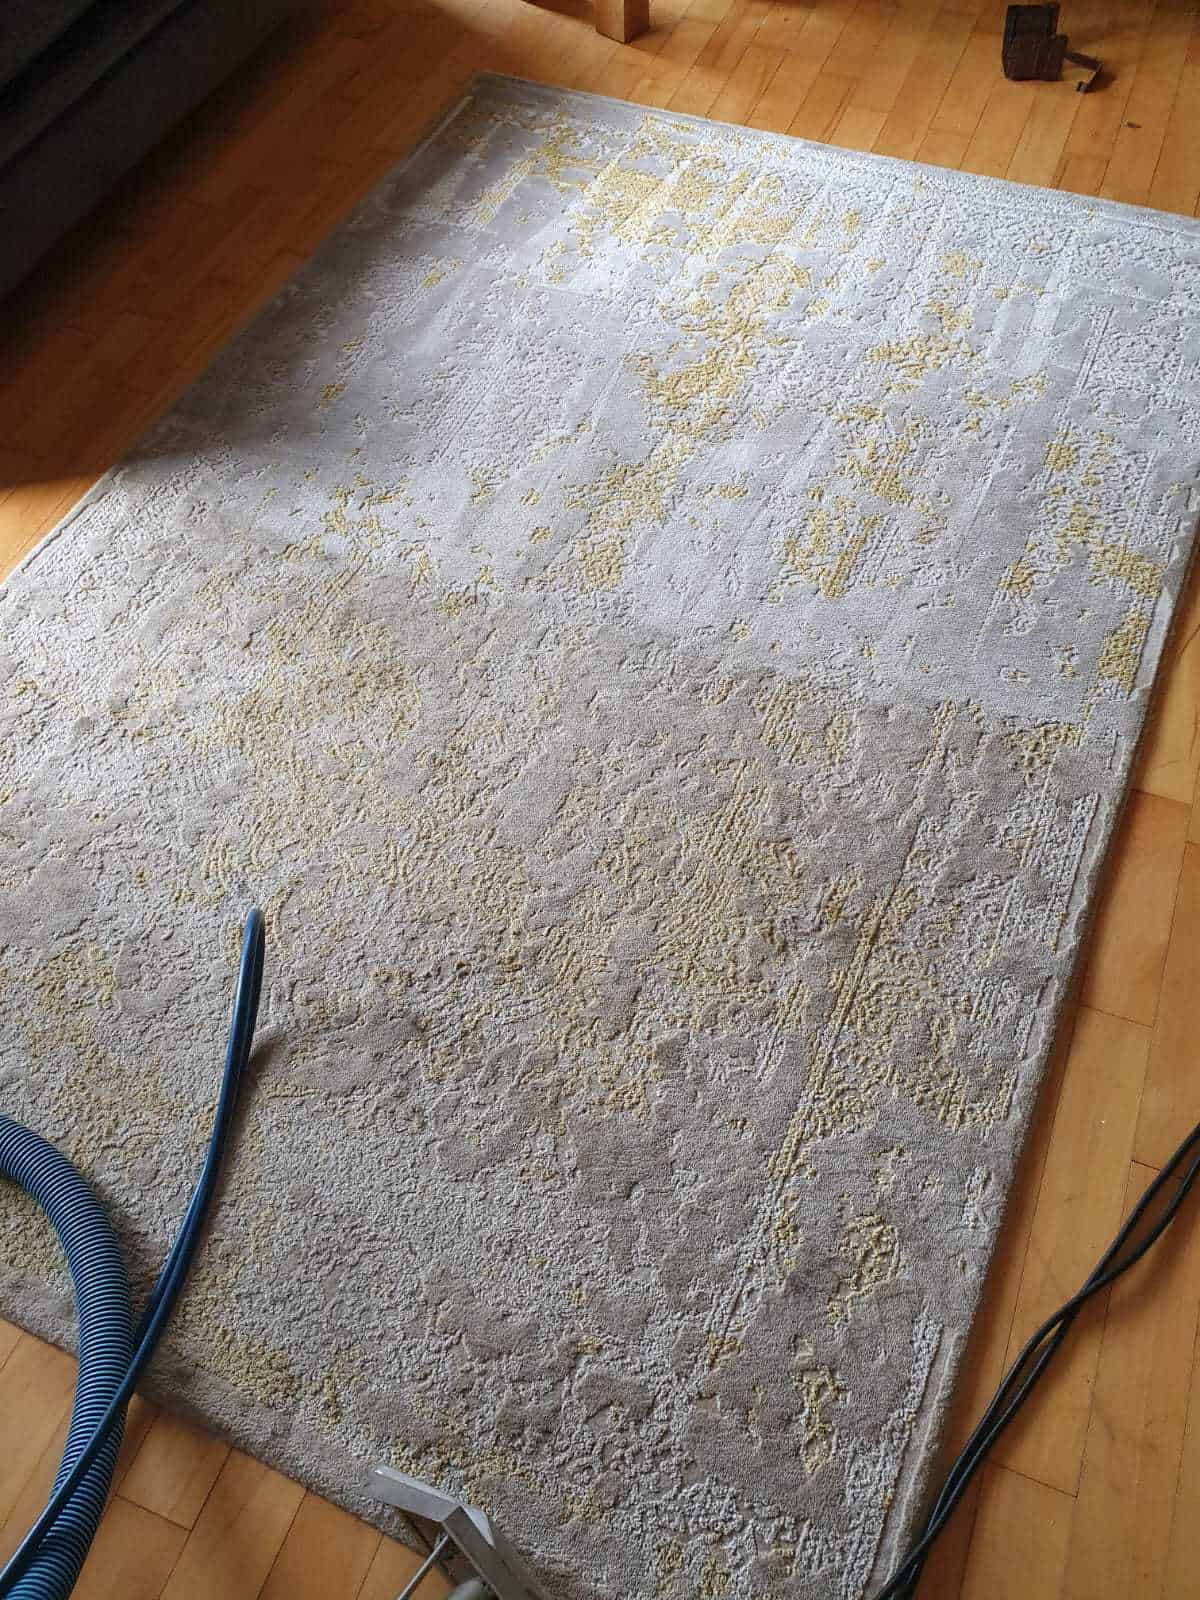 Photo mid-way through cleaning a rug